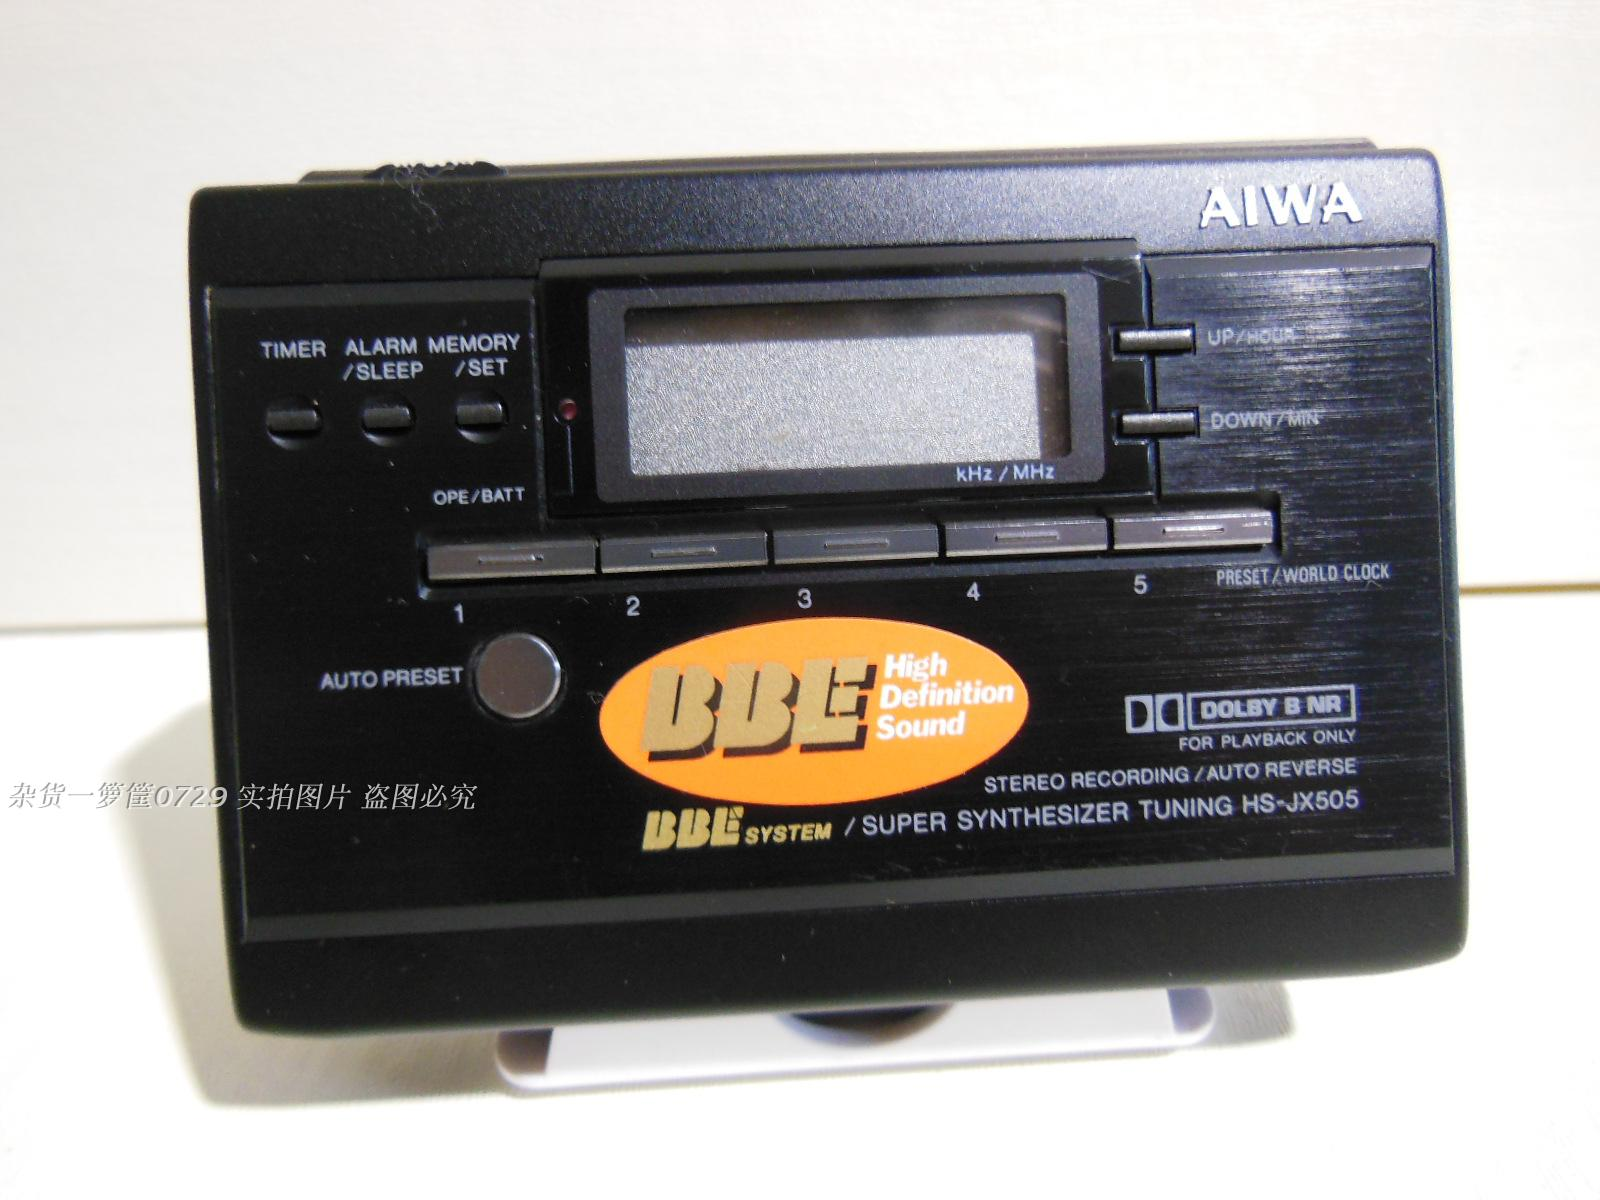 [Secondhand products]Second-hand AIWA/AIWA HS-JX505 JX505 tape player Walkman cassette player tape radio (2)